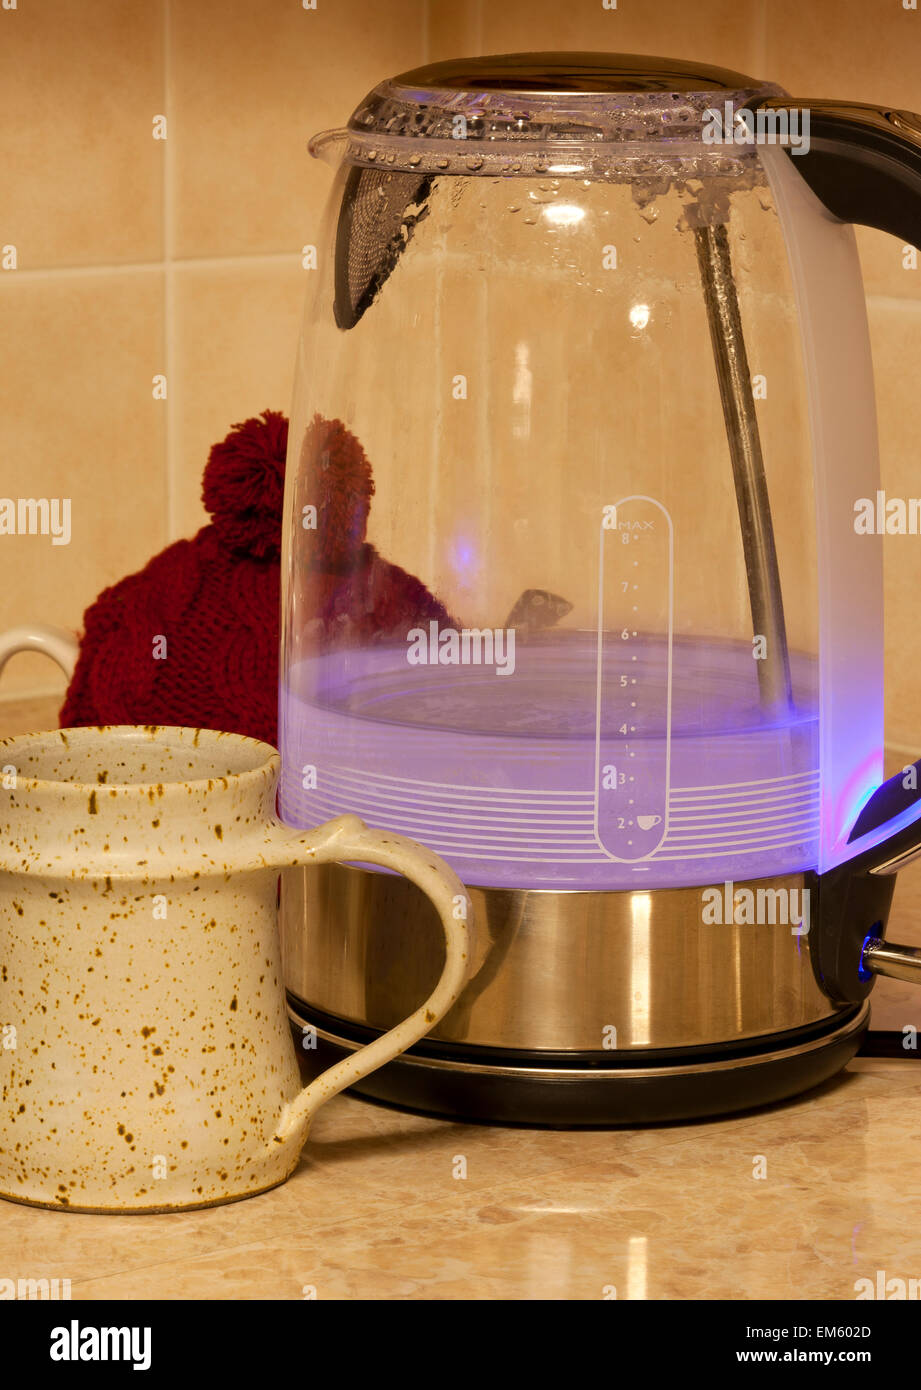 A jug kettle boiling water to make a hot drink - Stock Image